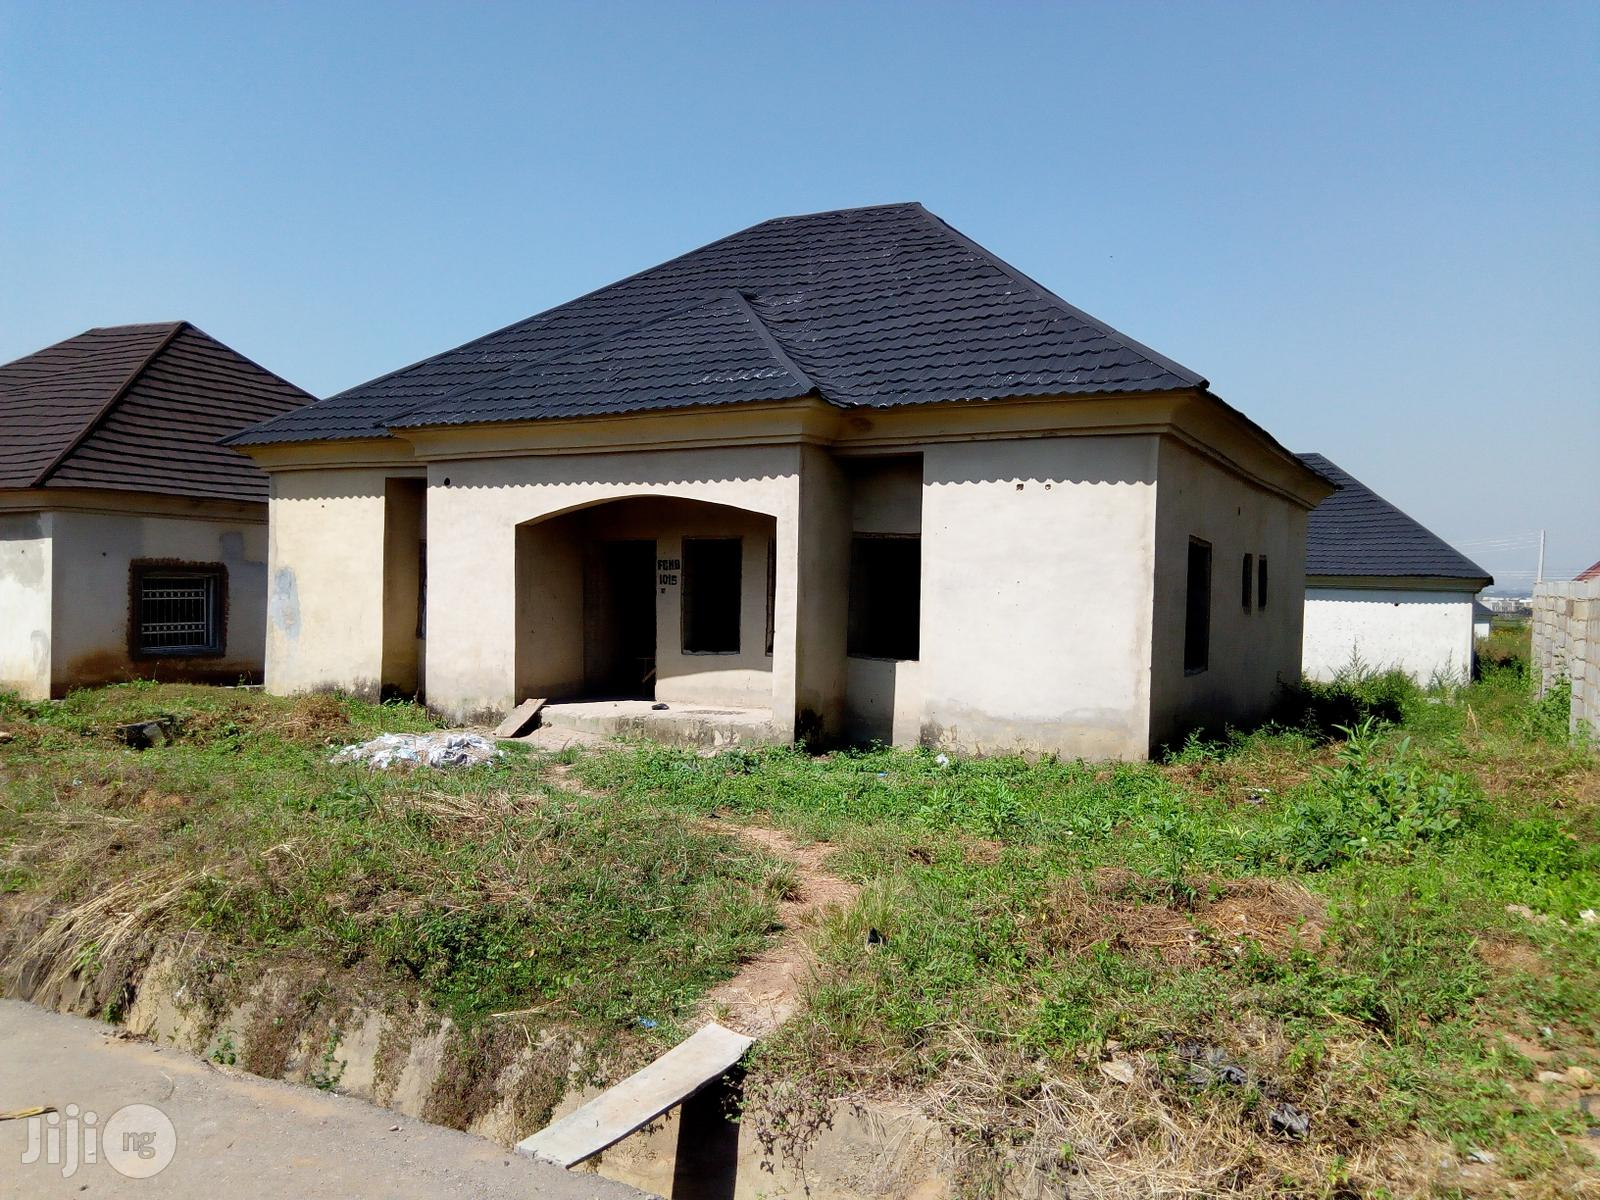 Mortgage 3 Bedroom Carcass Bungalow for Sale in Karsana | Houses & Apartments For Sale for sale in Gwarinpa, Abuja (FCT) State, Nigeria